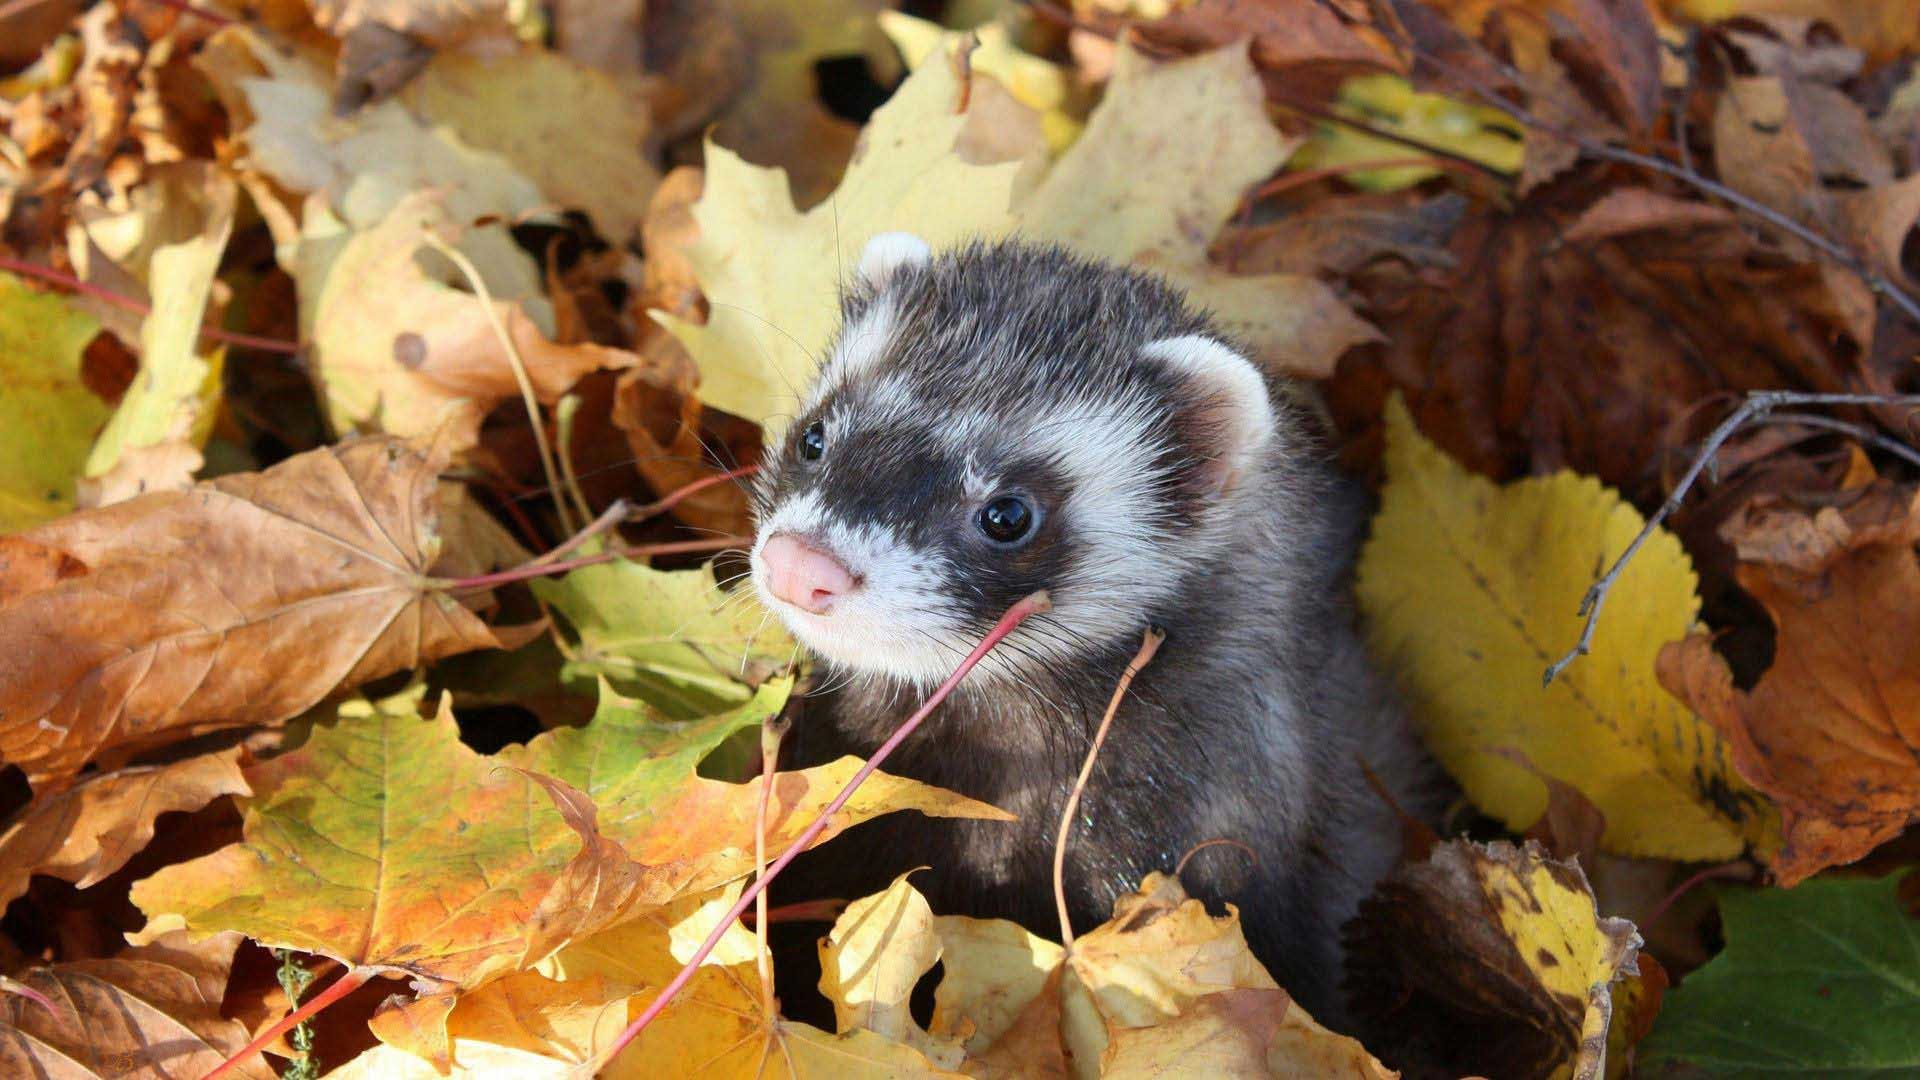 Res: 1920x1080, Animals Ferret In The Leaves Awesome Wallpaper